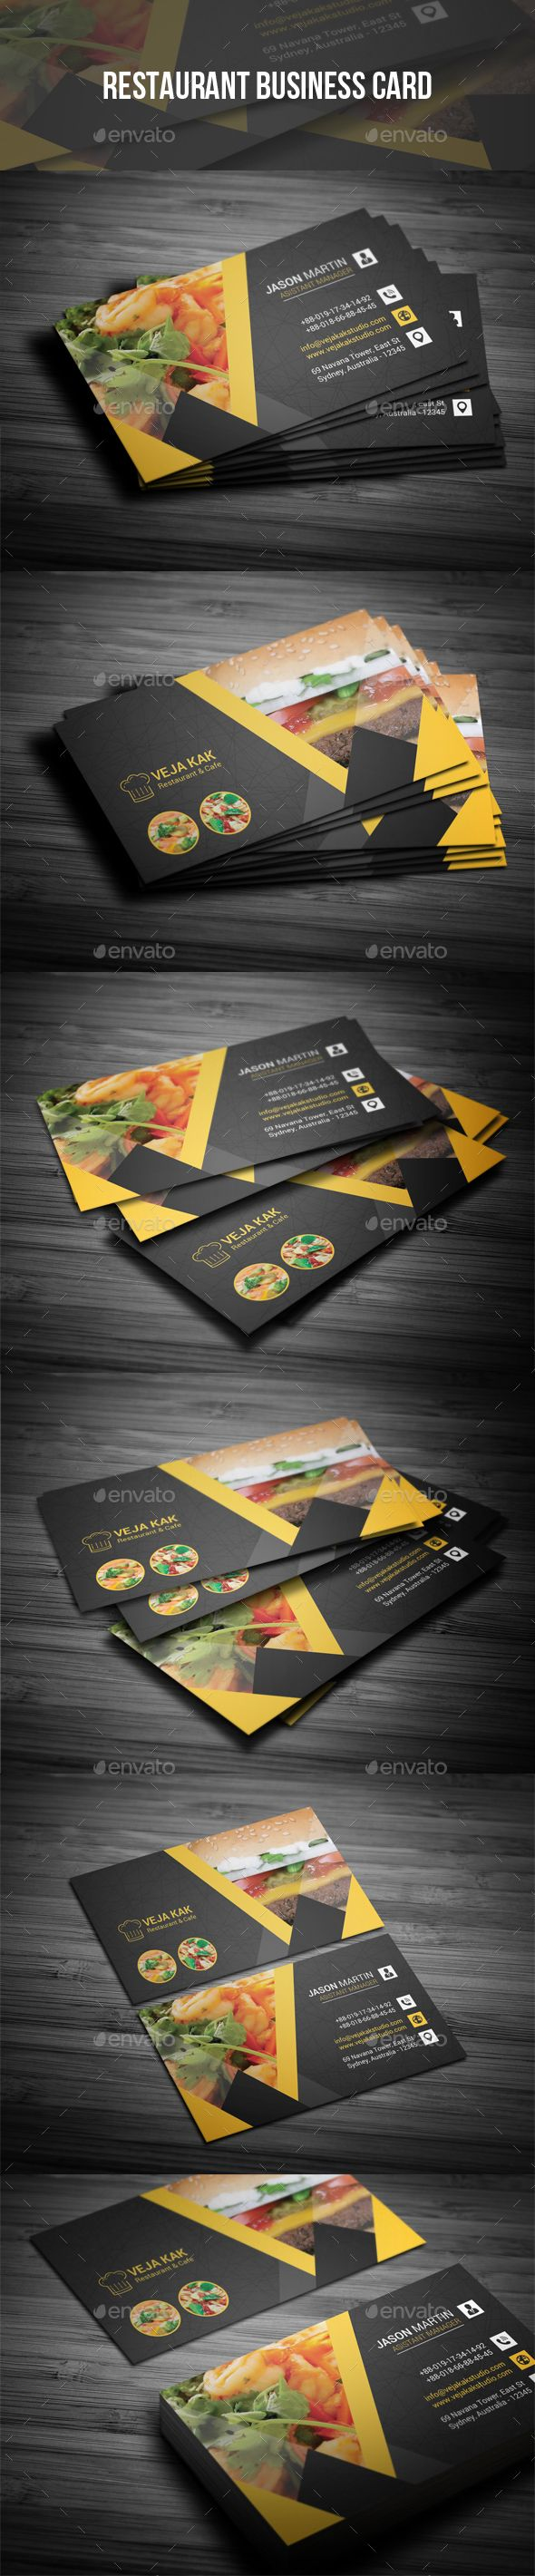 restaurant business card design template industry specific